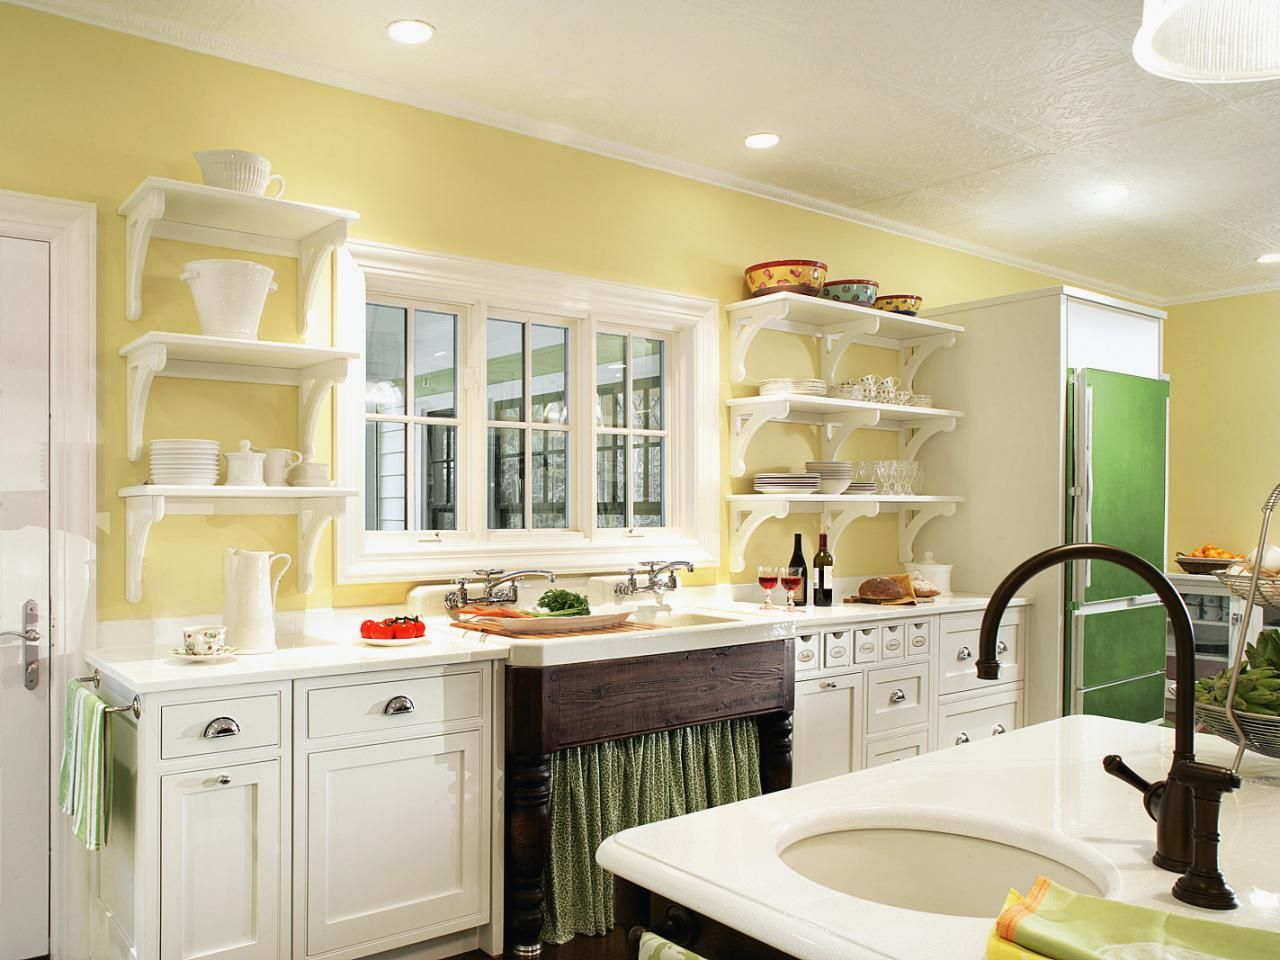 Italian Kitchen Design Pictures Ideas Tips From Hgtv Yellow Kitchen Walls Kitchen Design Small Yellow Kitchen Designs